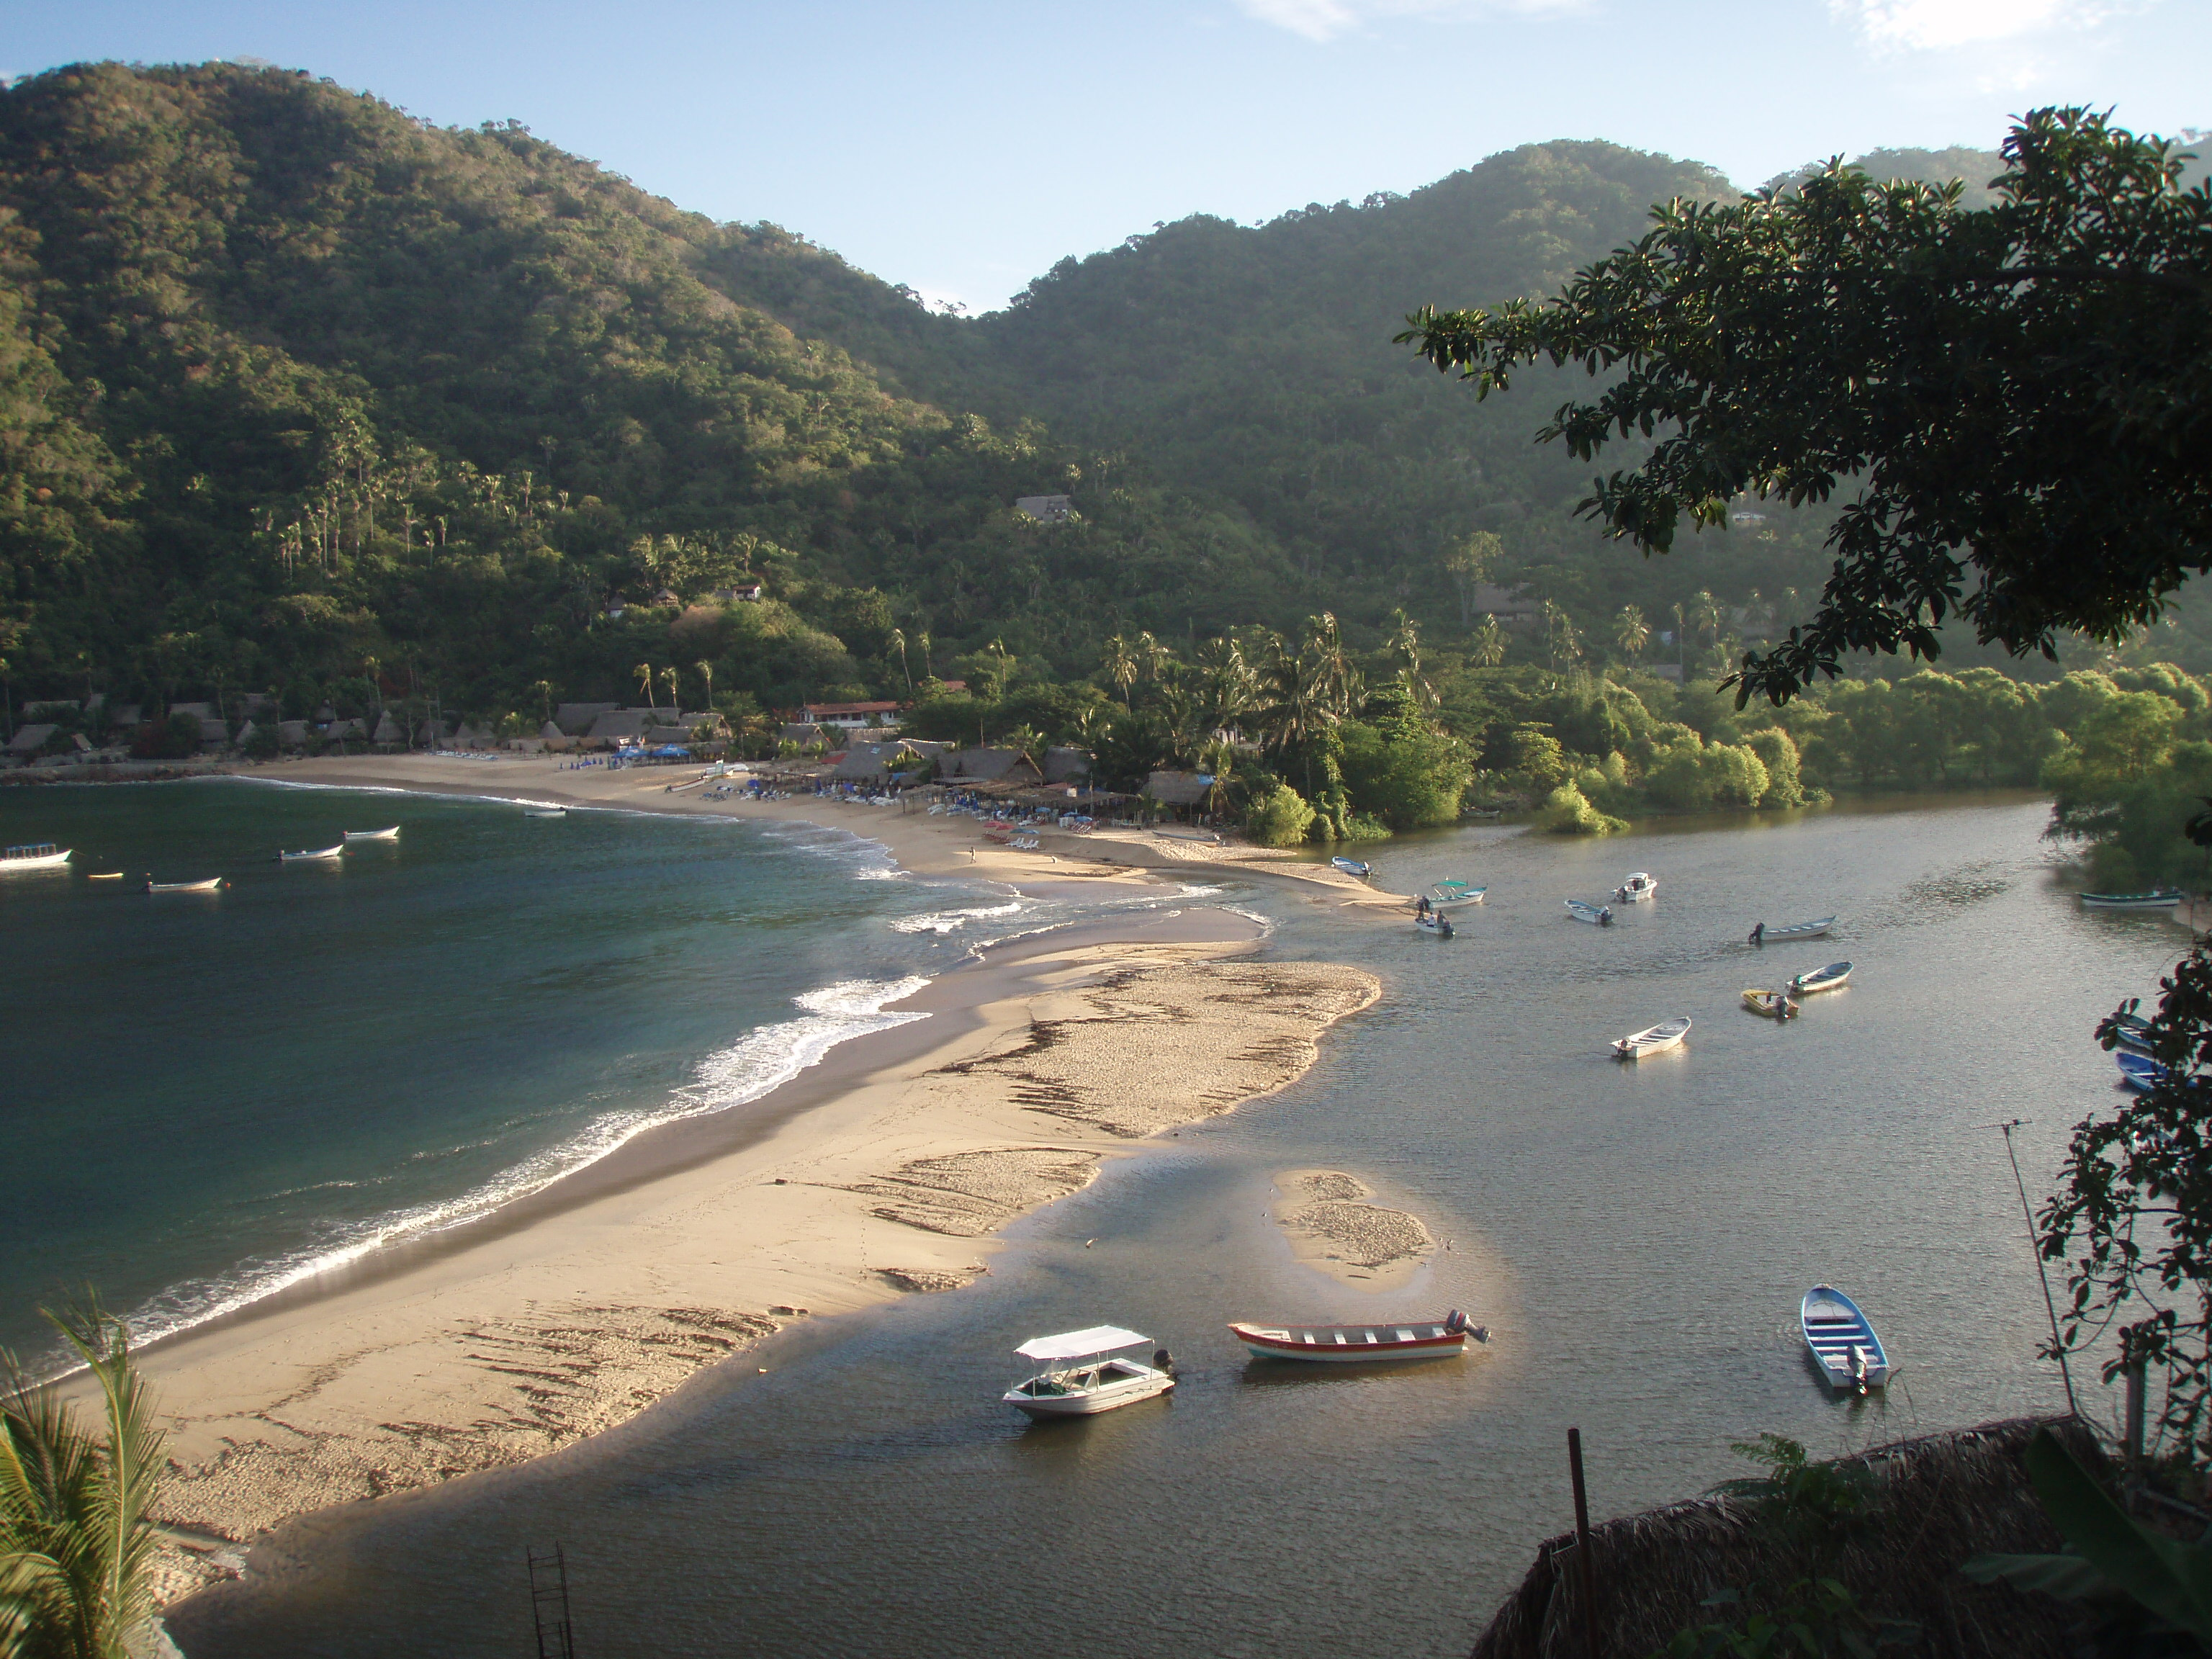 Main beach (La Playa).  The river comes in from the right